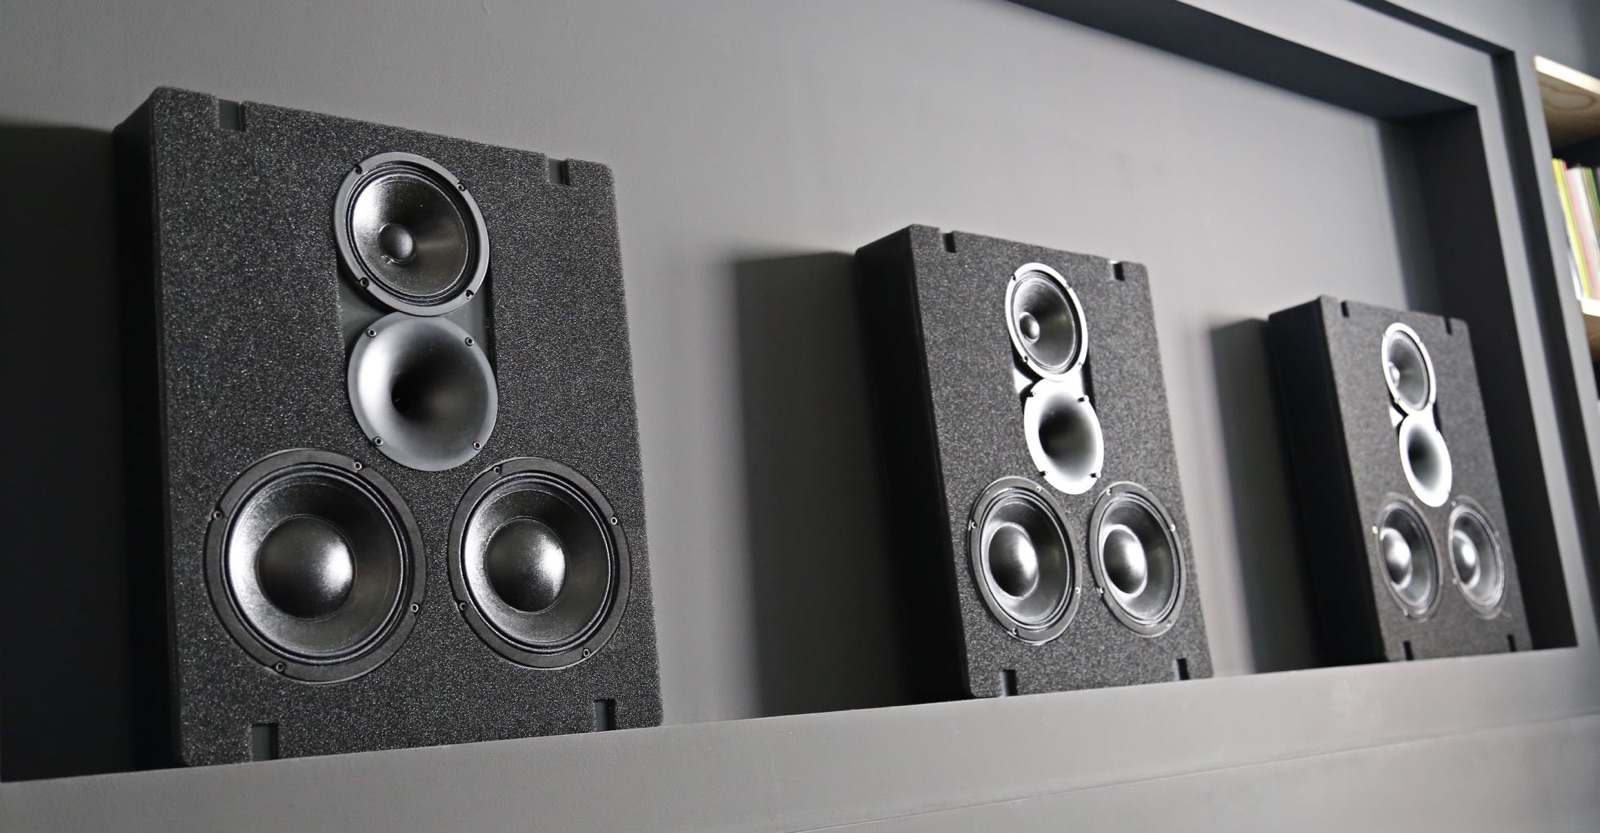 Audio Excellence Home Cinema High End Screen Loudspeakers How To Install Theater System It Has Been Specially Designed For Dedicated Installations Reproduce The True Sound At Same Quality And